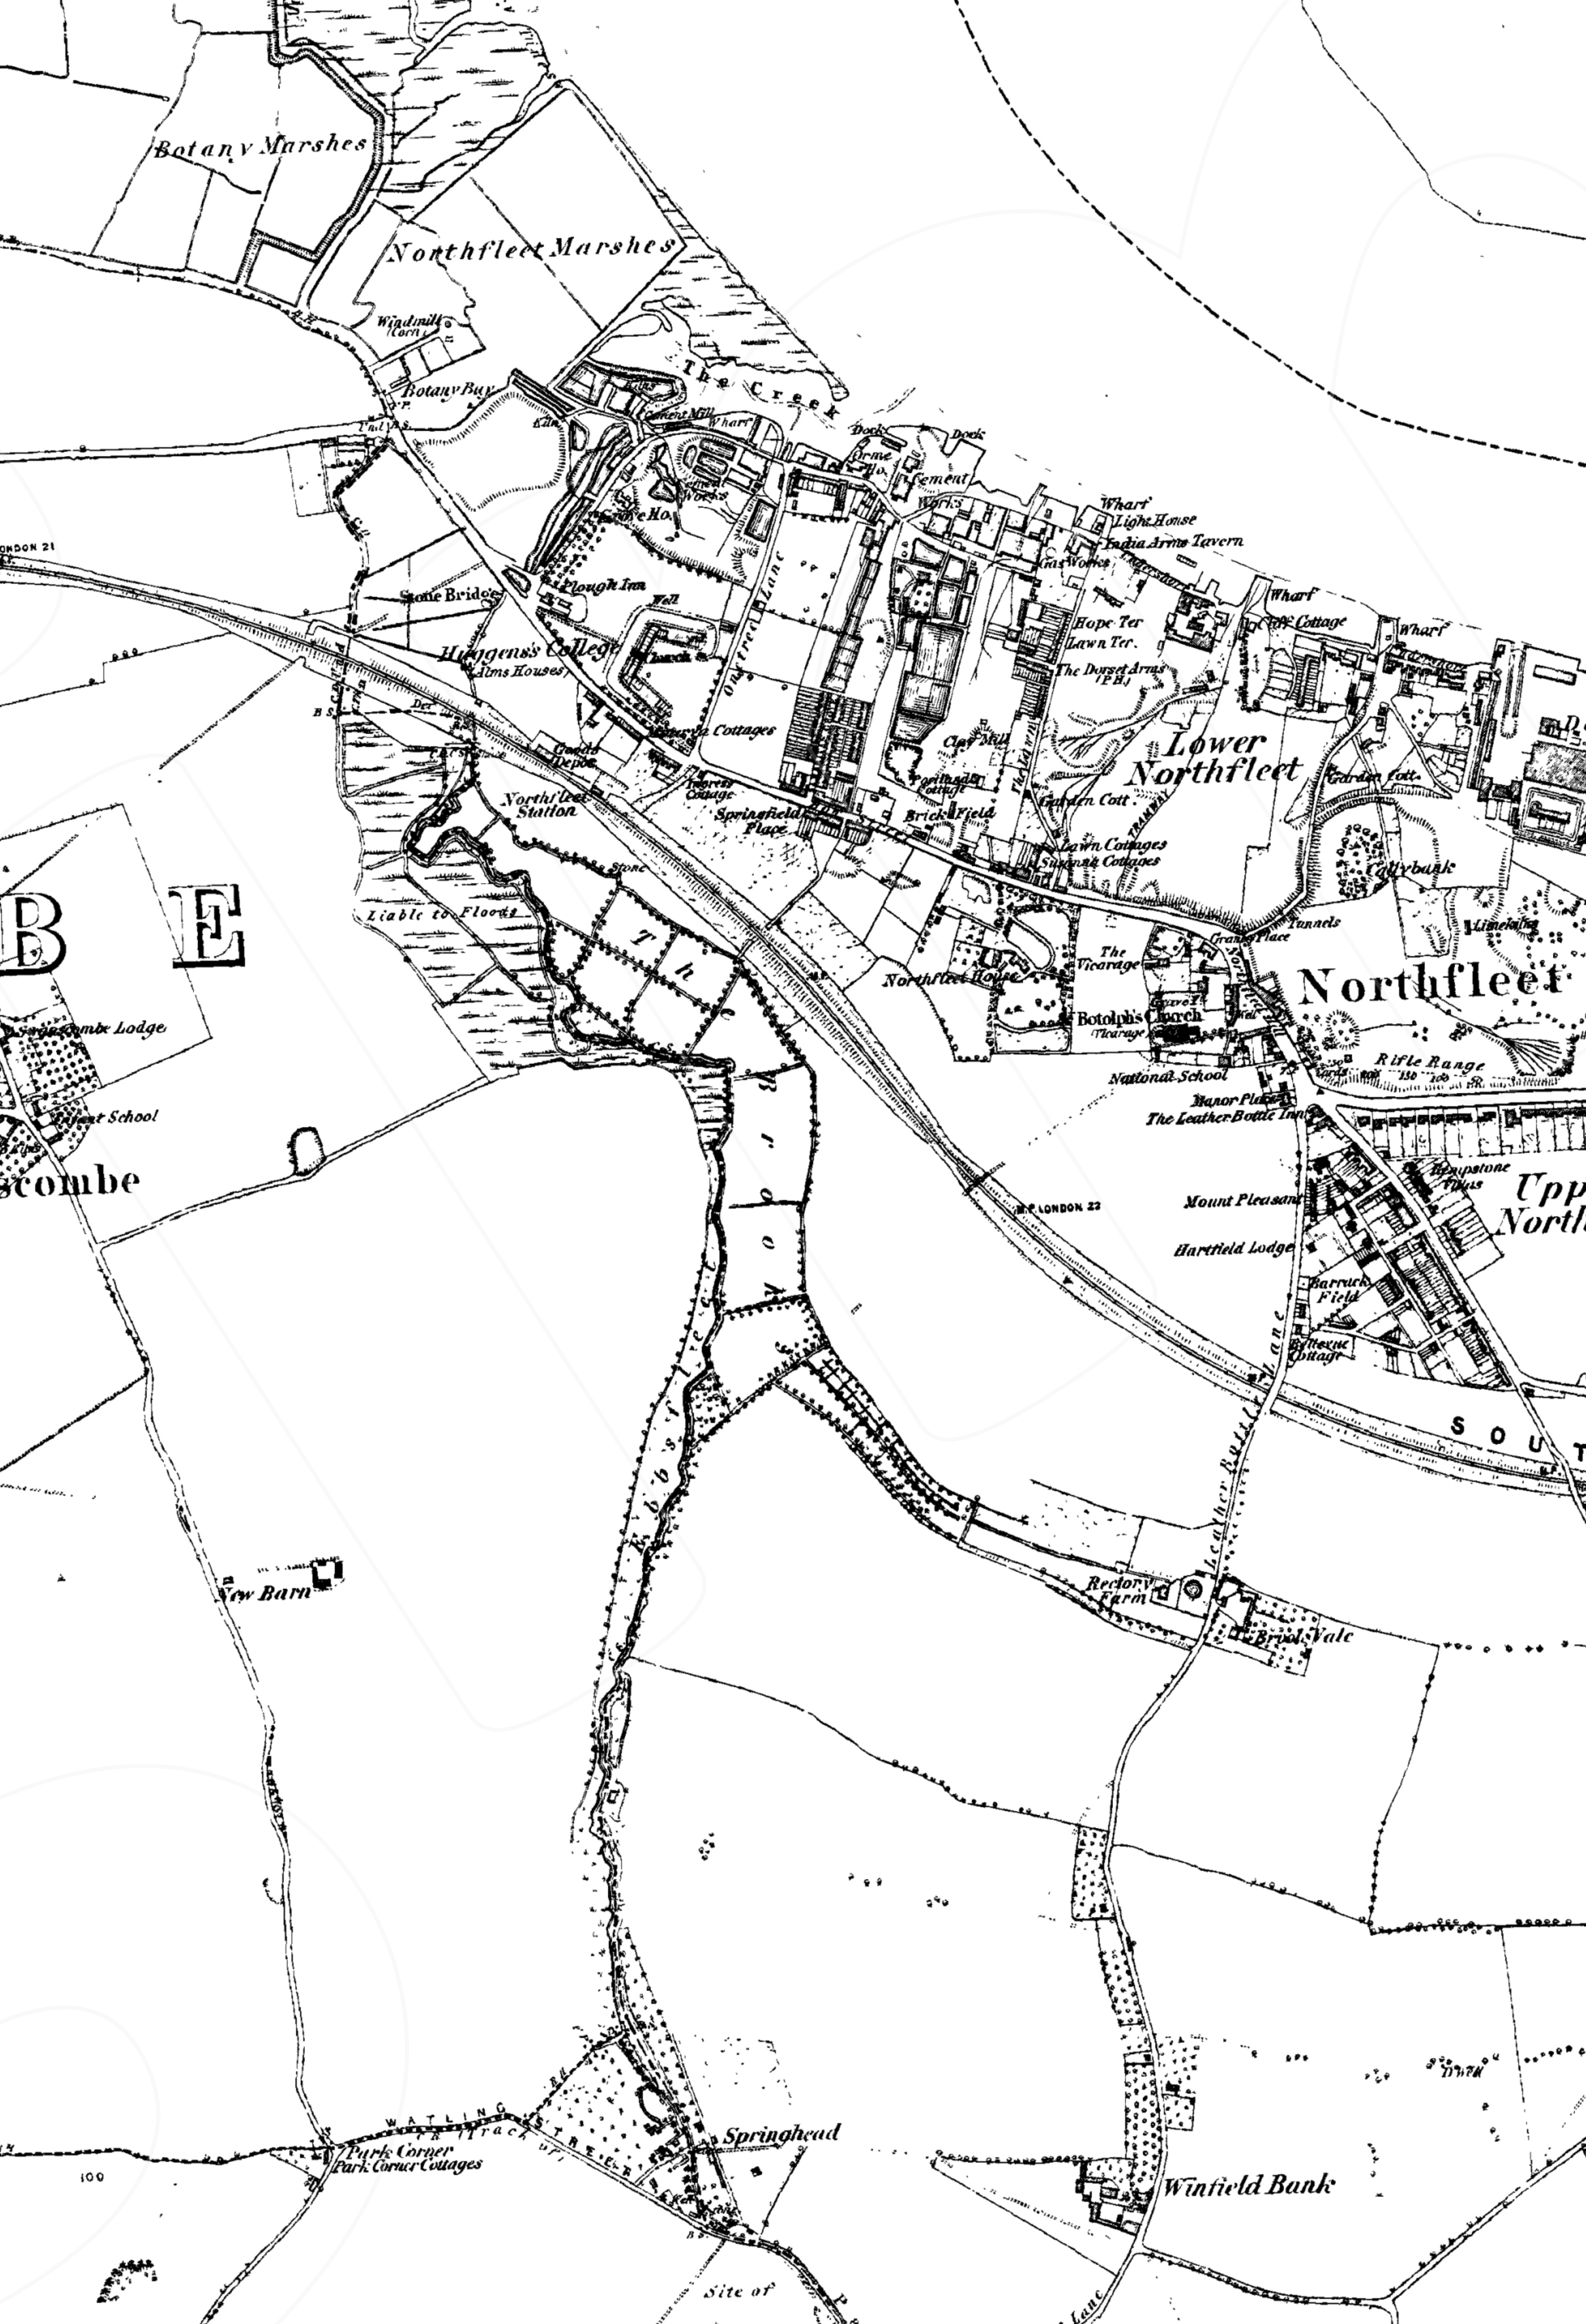 1860 map of Ebbsfleet river - © Crown copyright and Landmark Information Group Limited 2018. All rights reserved.